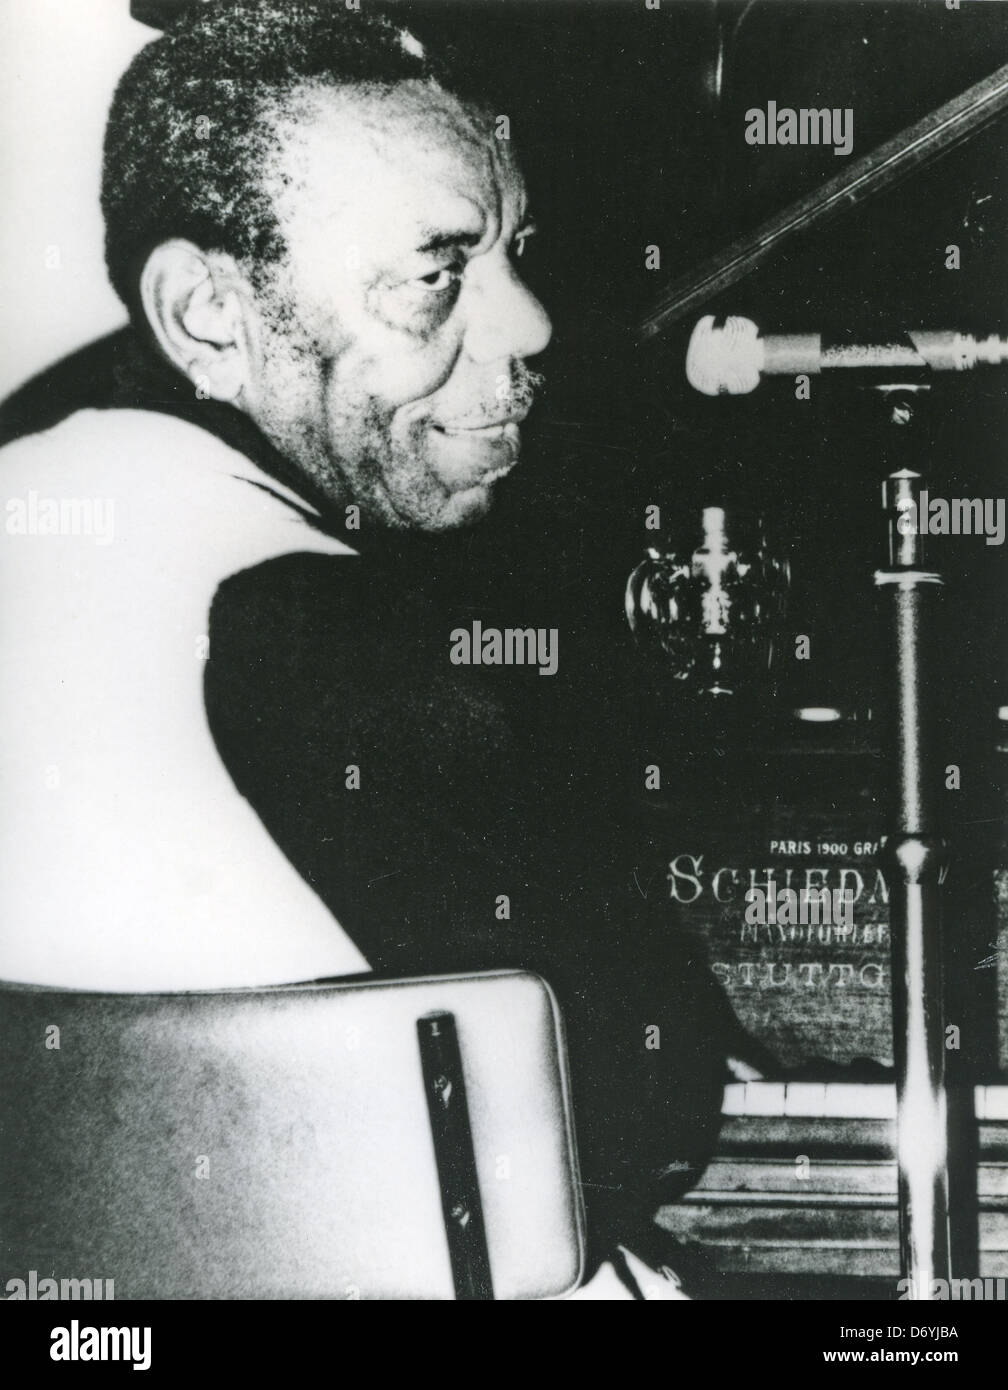 CHAMPION JACK DUPREE (c 1909-1992) US Blues pianist about 1985 - Stock